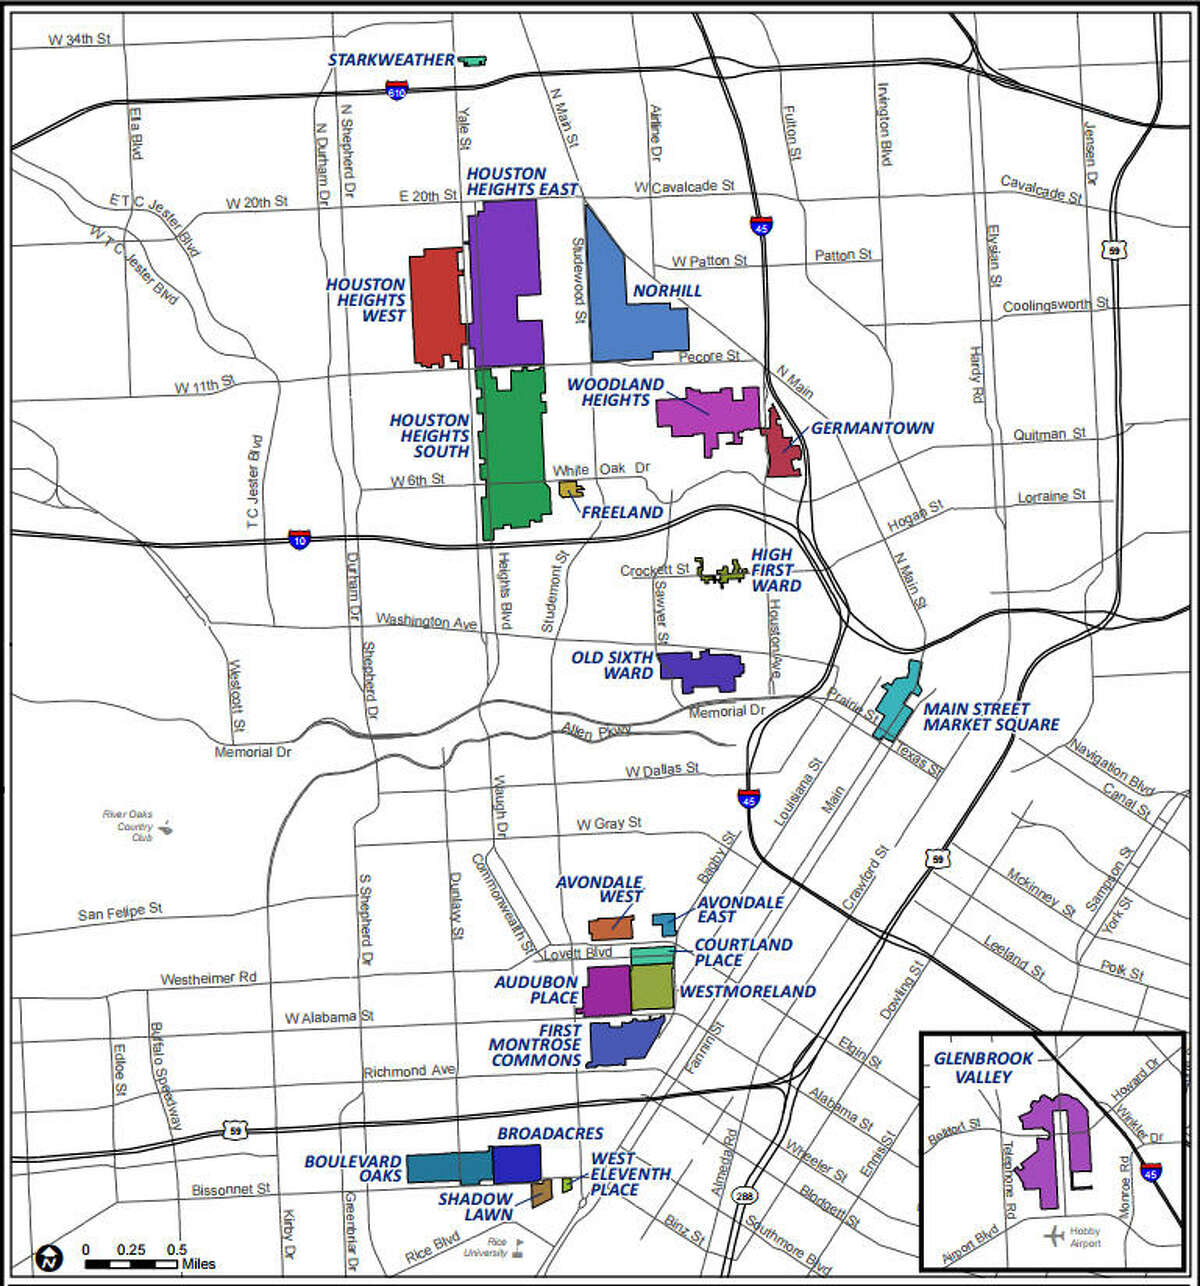 The city of Houston Historic Districts.